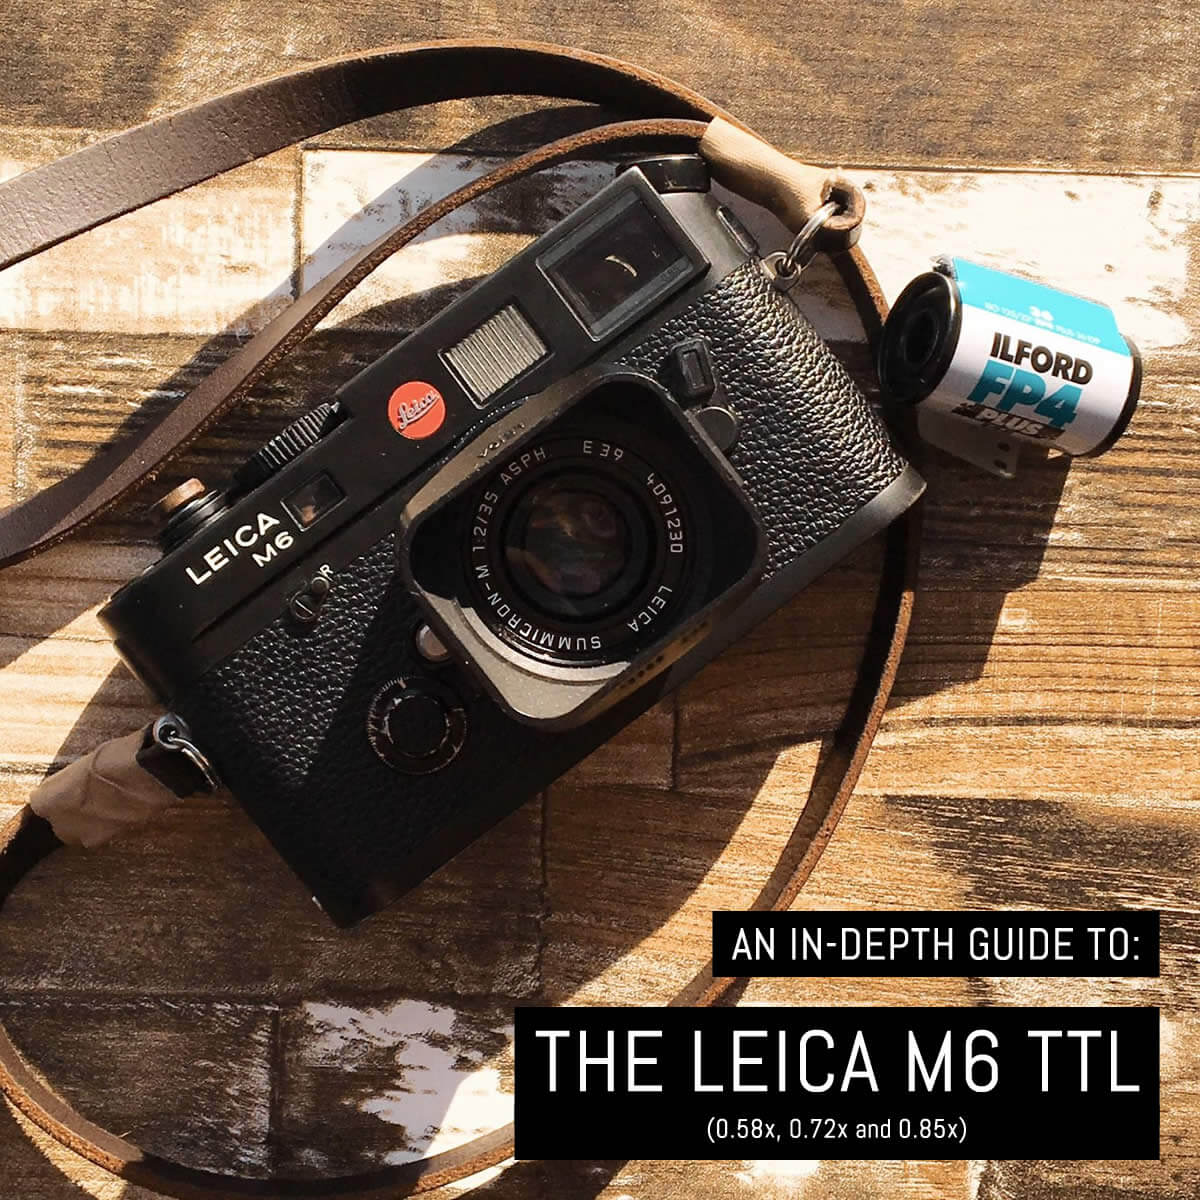 An in-depth guide to: The Leica M6 TTL | EMULSIVE